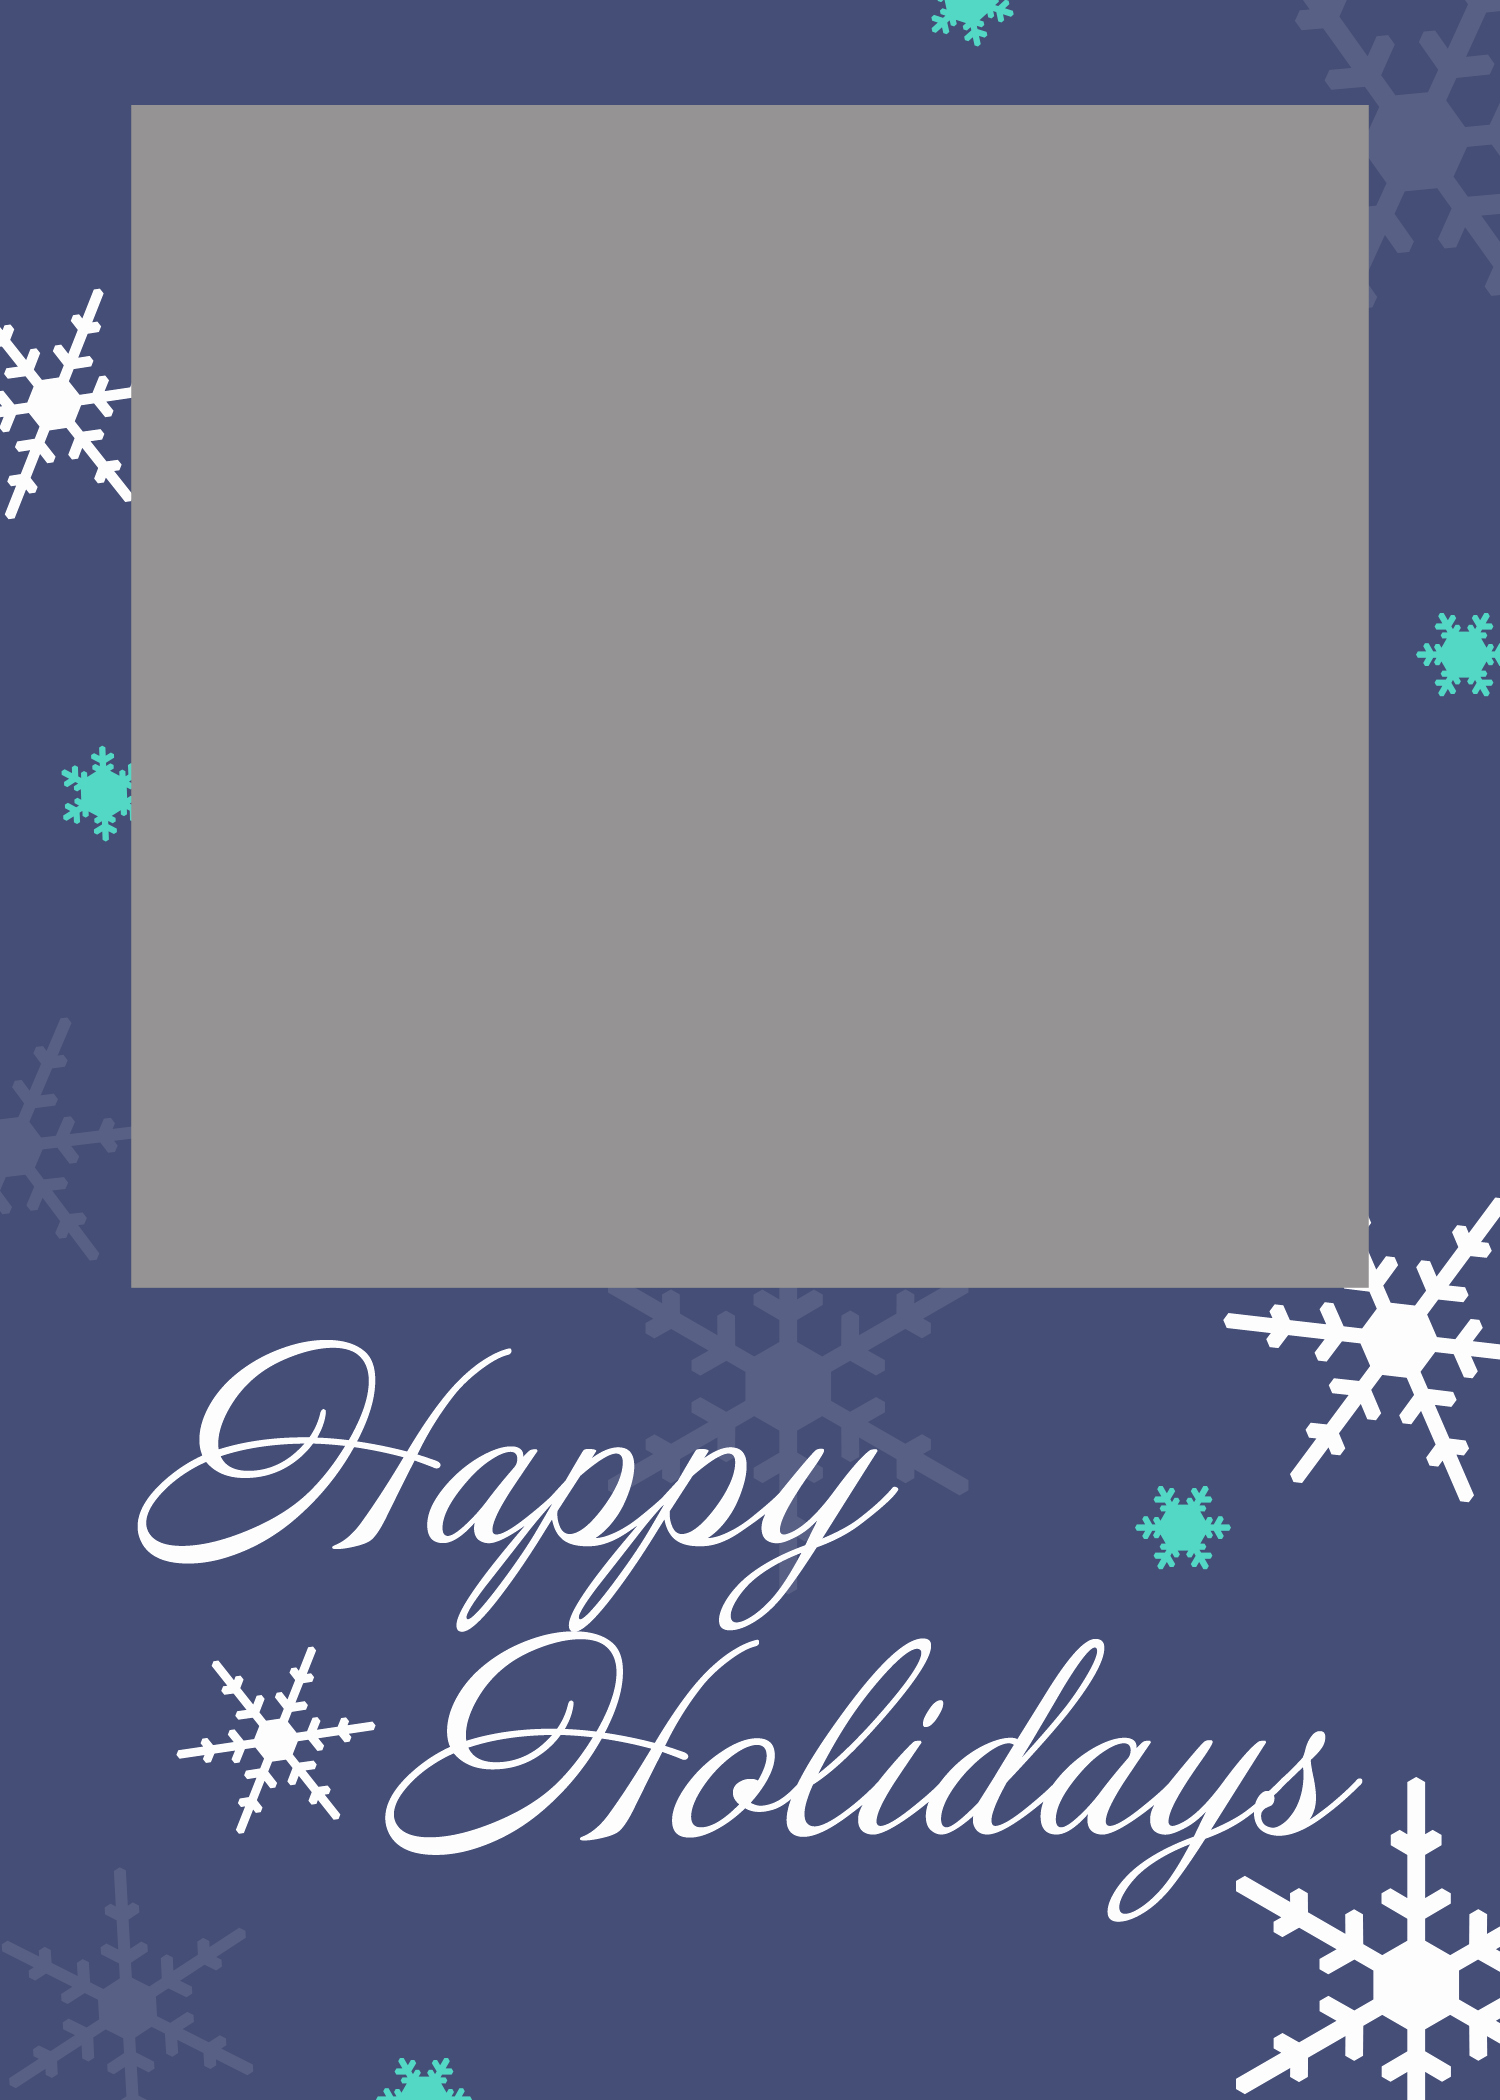 Free Printable Photo Cards Templates Awesome Free Christmas Card Templates